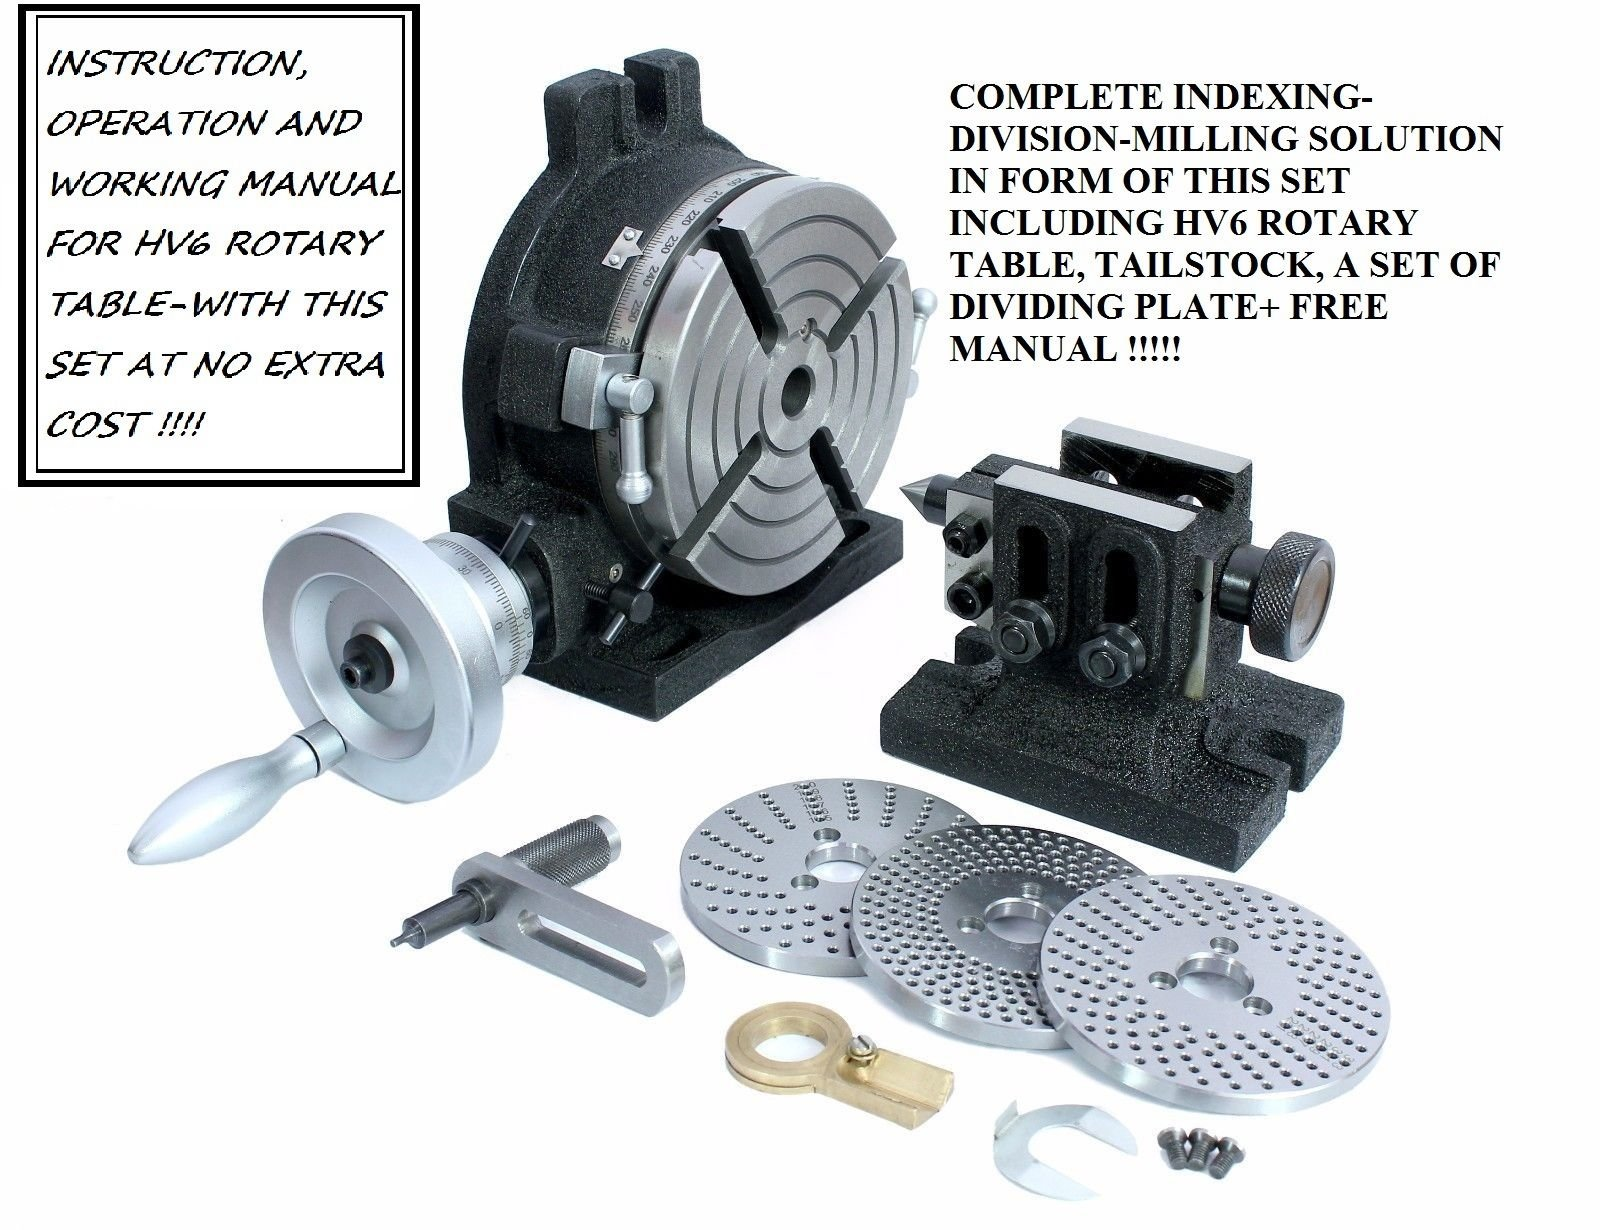 HV6 Rotary Table, Steel Dividing Plates Set & Tailstock with Free Manual-Milling Indexing Kit